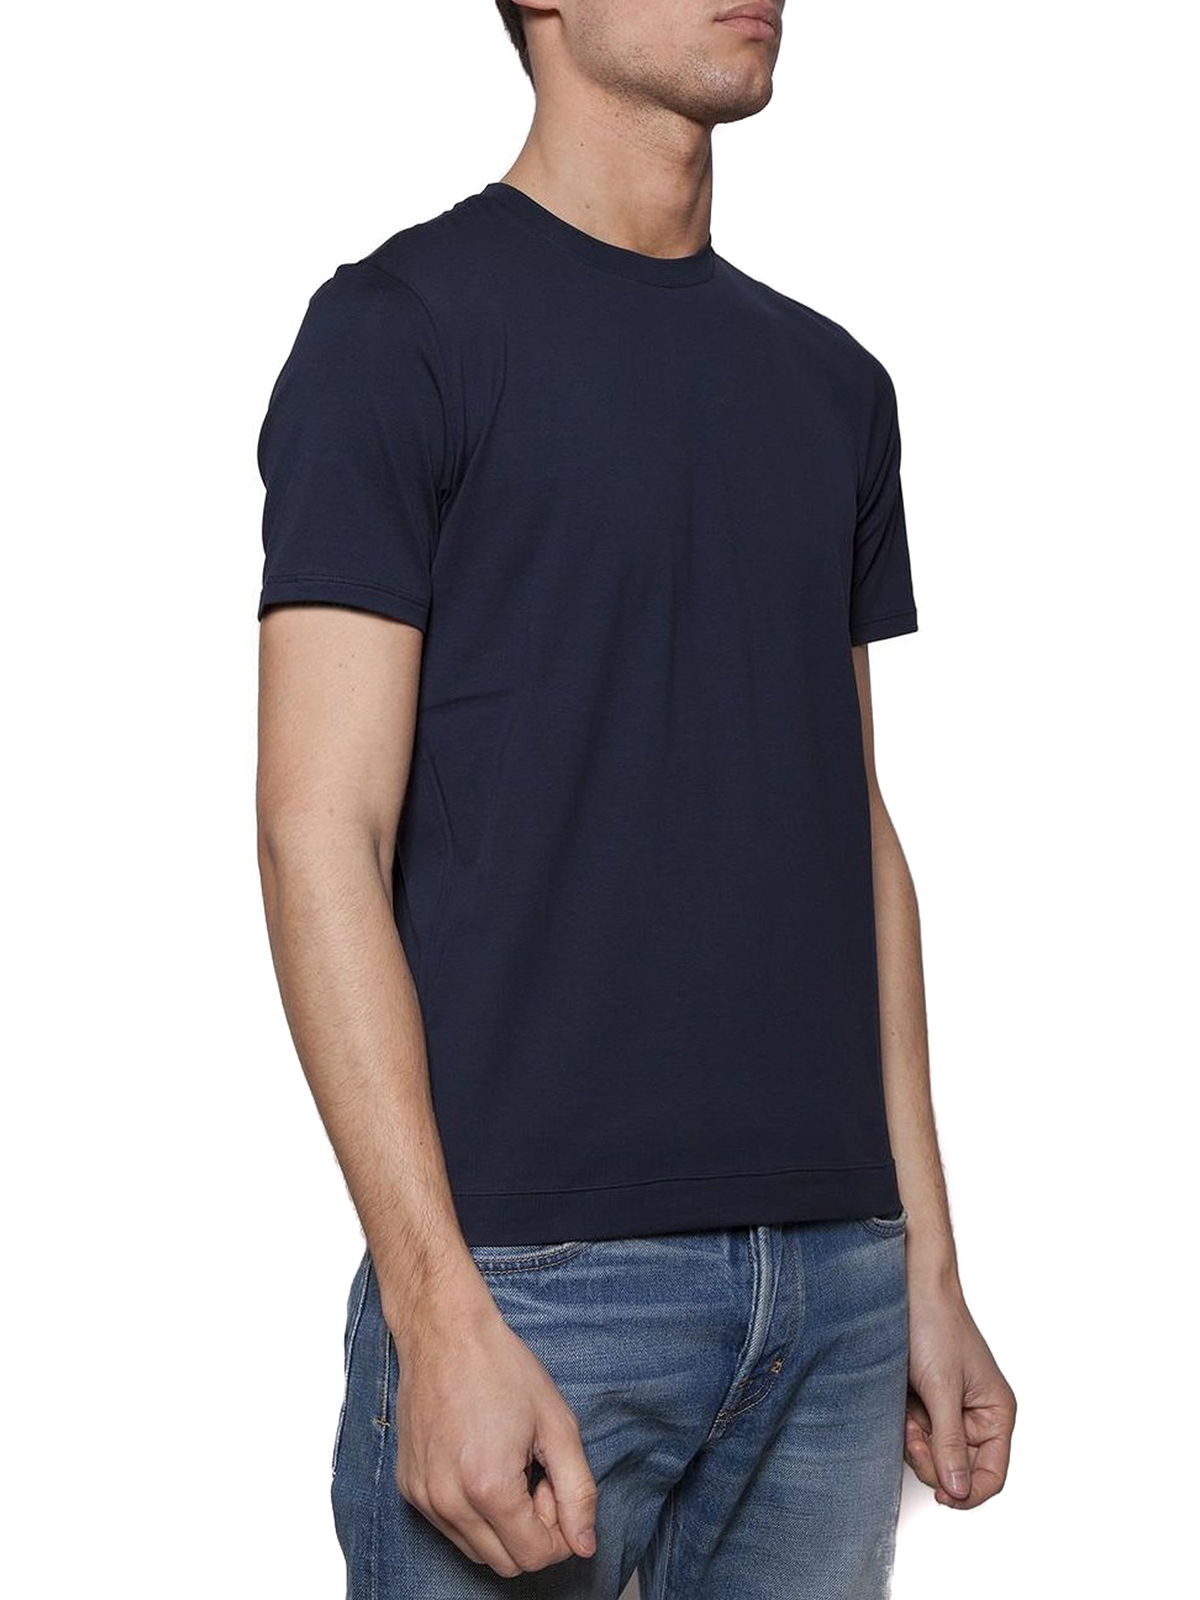 meet faf1e 2a341 Cruciani - Dark blue stretch jersey T-shirt - t-shirts ...